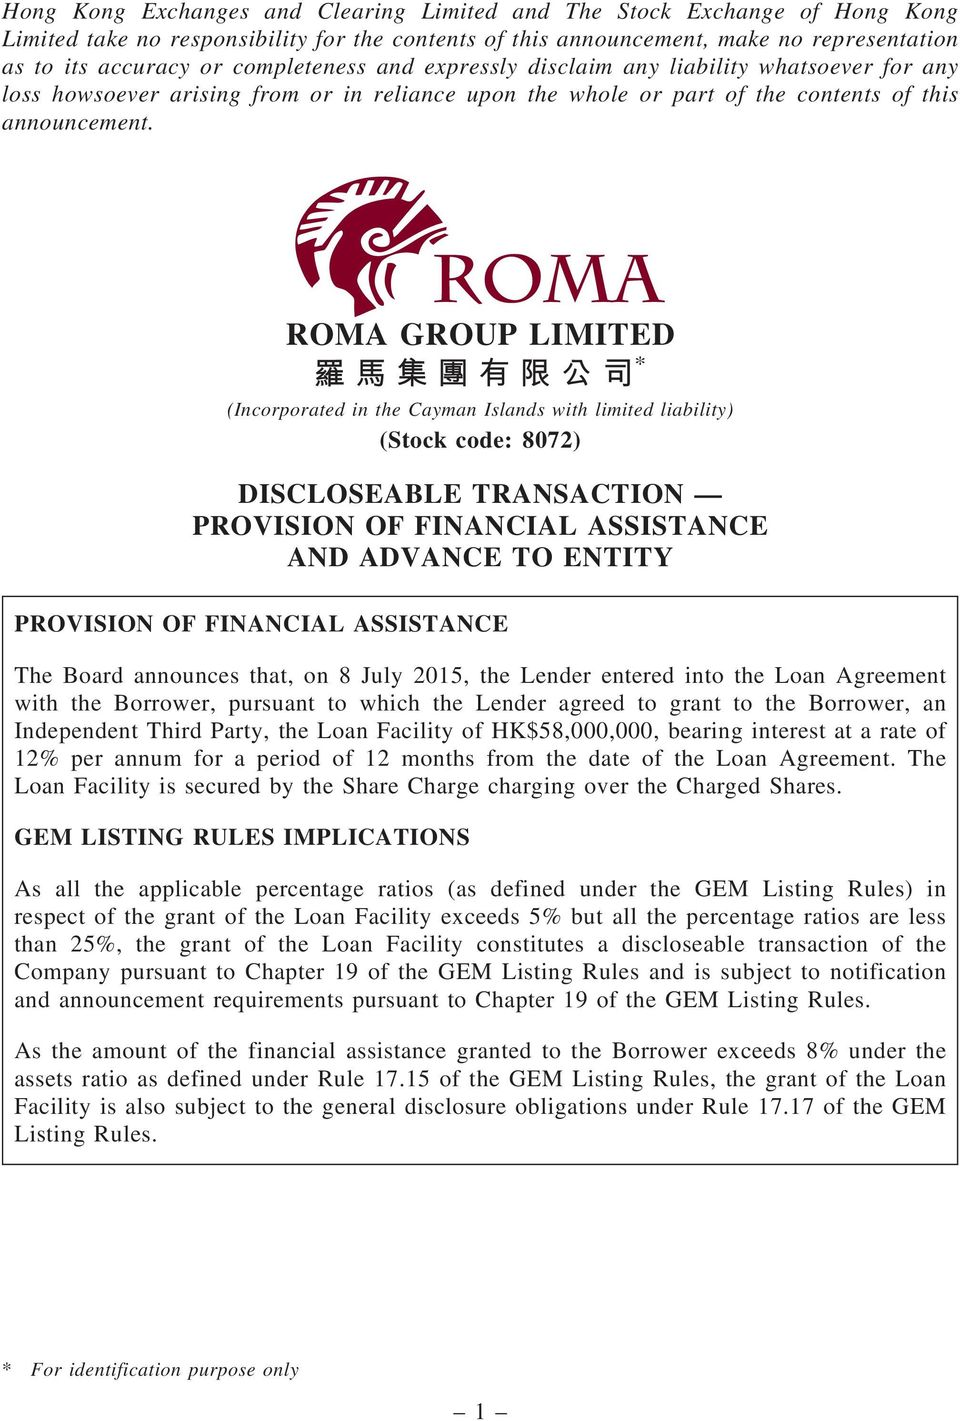 ROMA GROUP LIMITED * 羅 馬 集 團 有 限 公 司 (Incorporated in the Cayman Islands with limited liability) (Stock code: 8072) DISCLOSEABLE TRANSACTION PROVISION OF FINANCIAL ASSISTANCE AND ADVANCE TO ENTITY